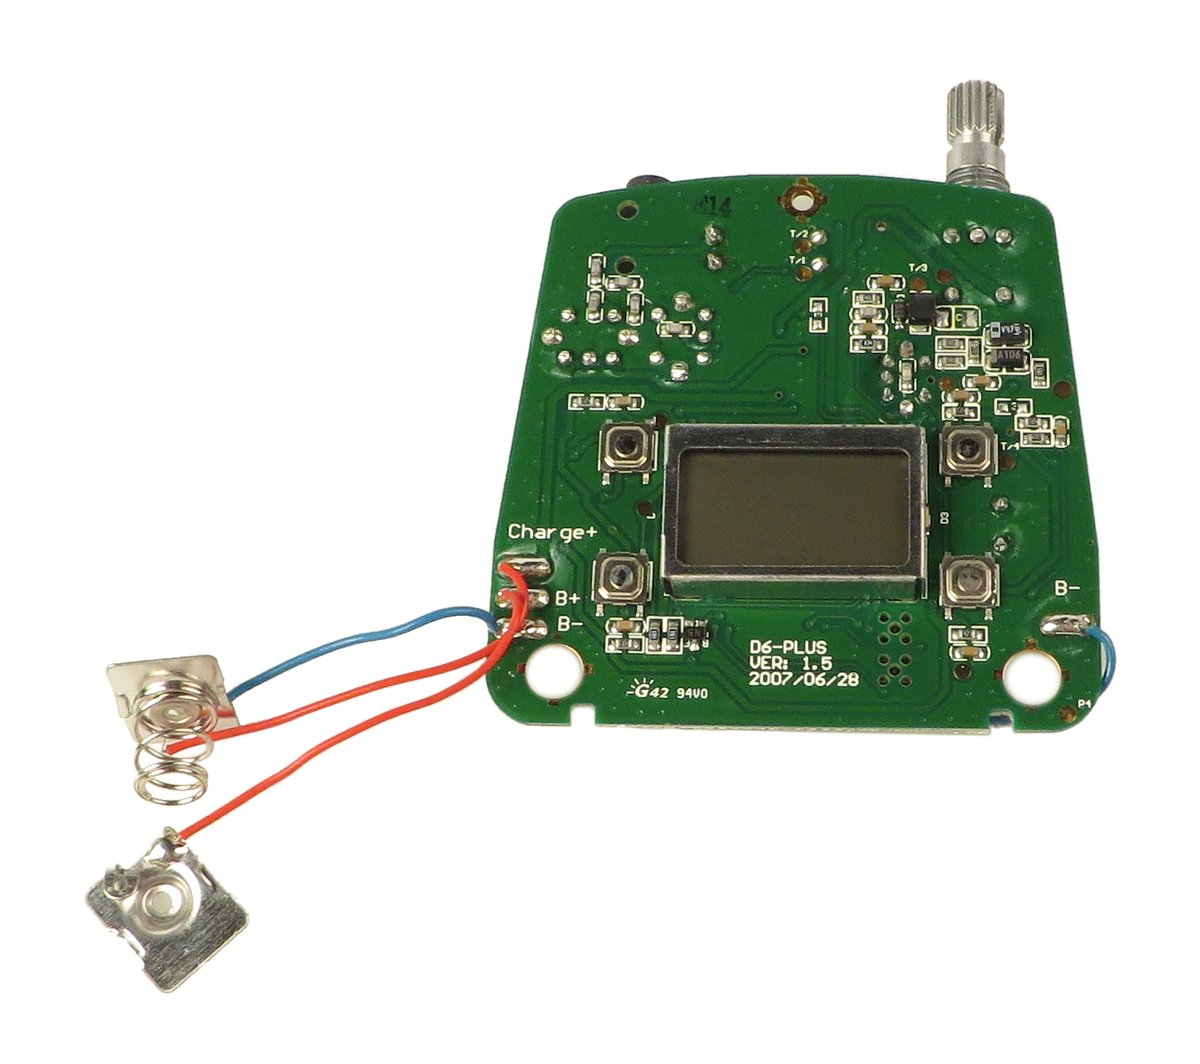 Surface Mount PCB Jack for Digital-6 Plus